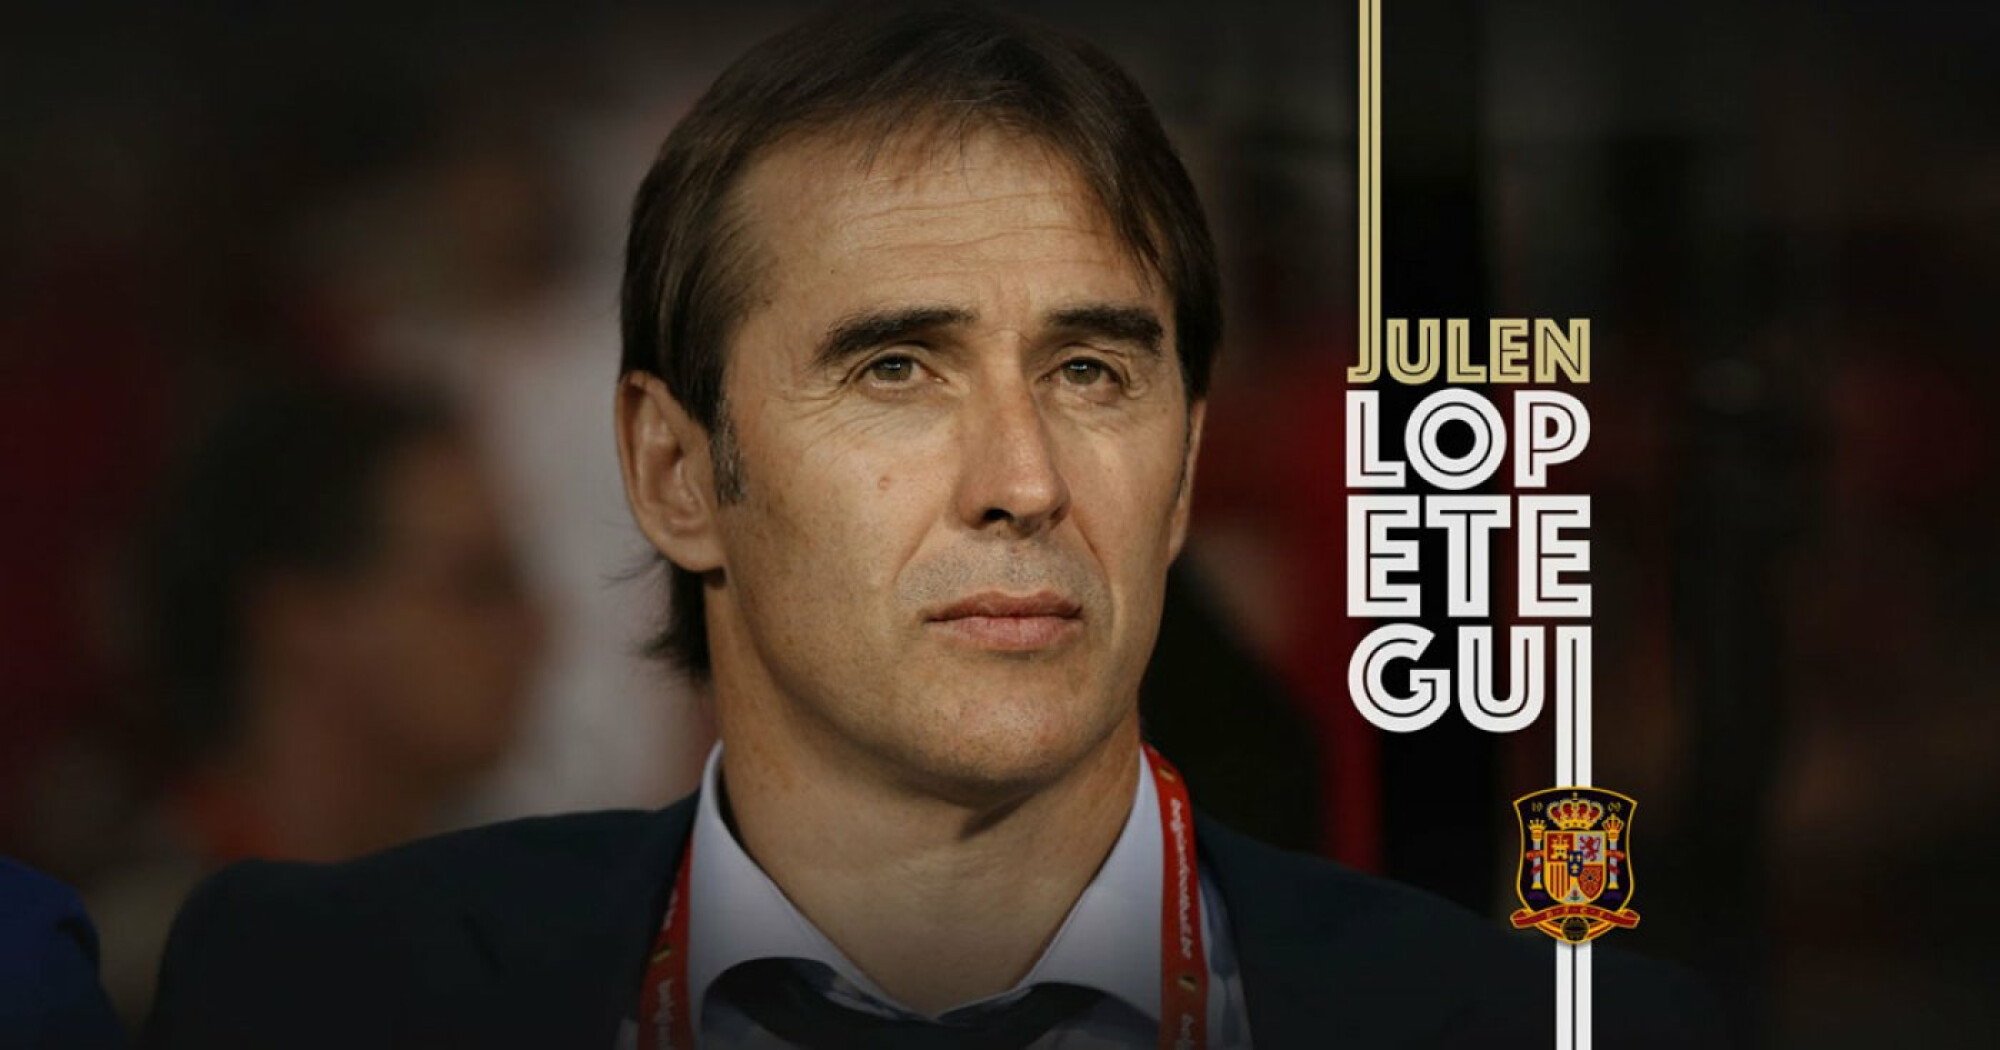 Real Madrid have announced their new head coach